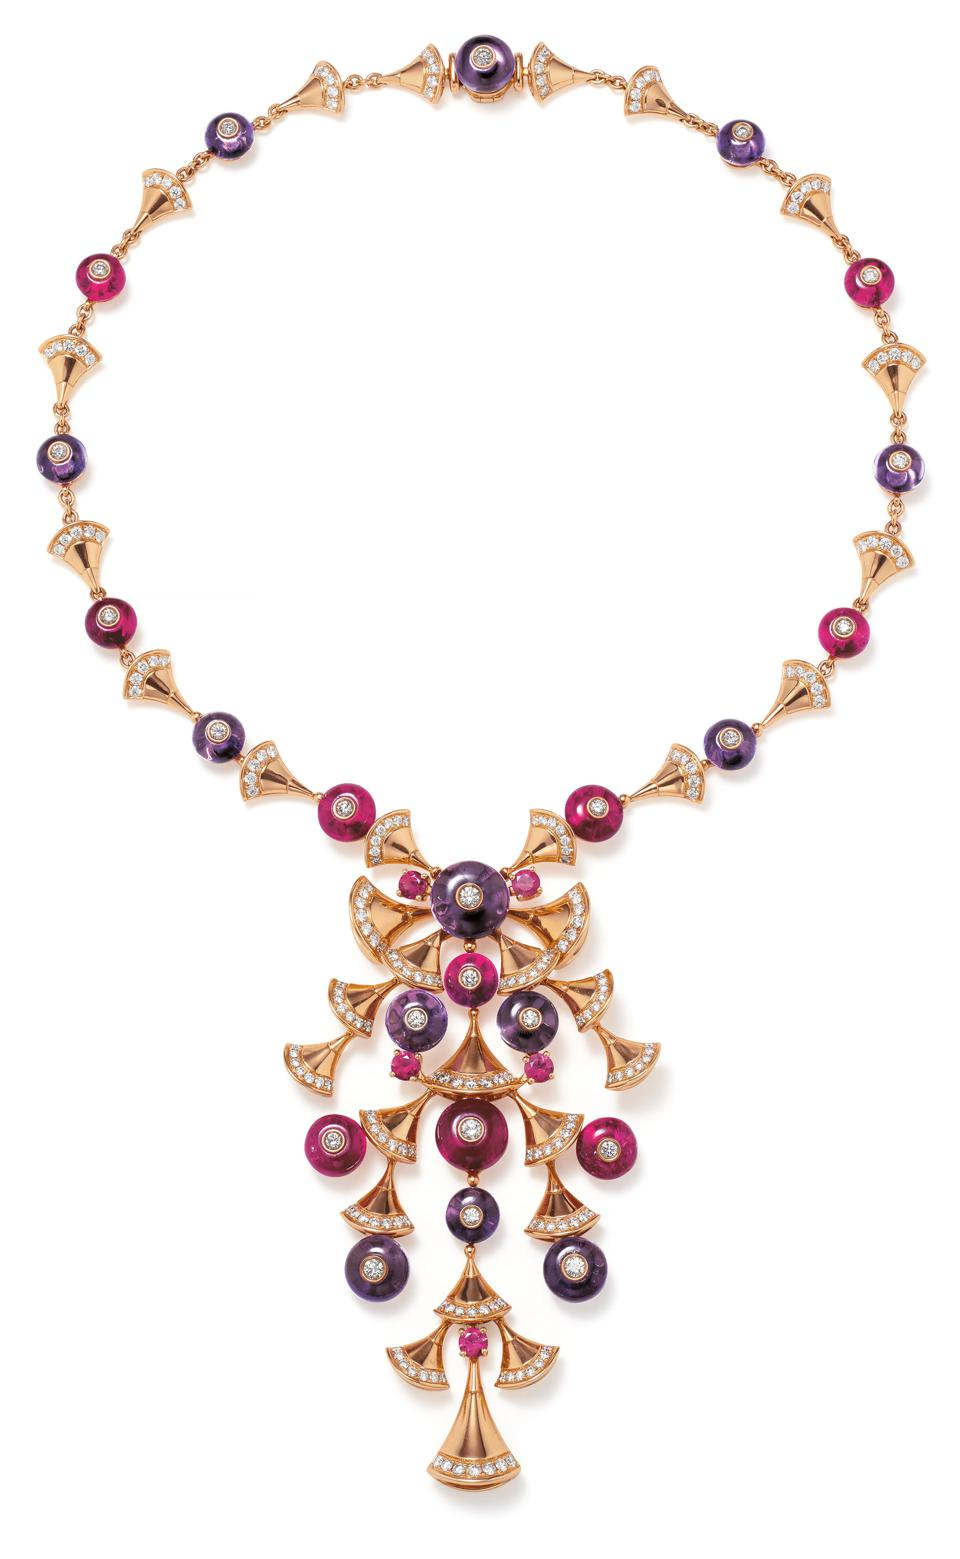 The Bulgari 'Divas' Dream Necklace to be auctioned by Phillips.